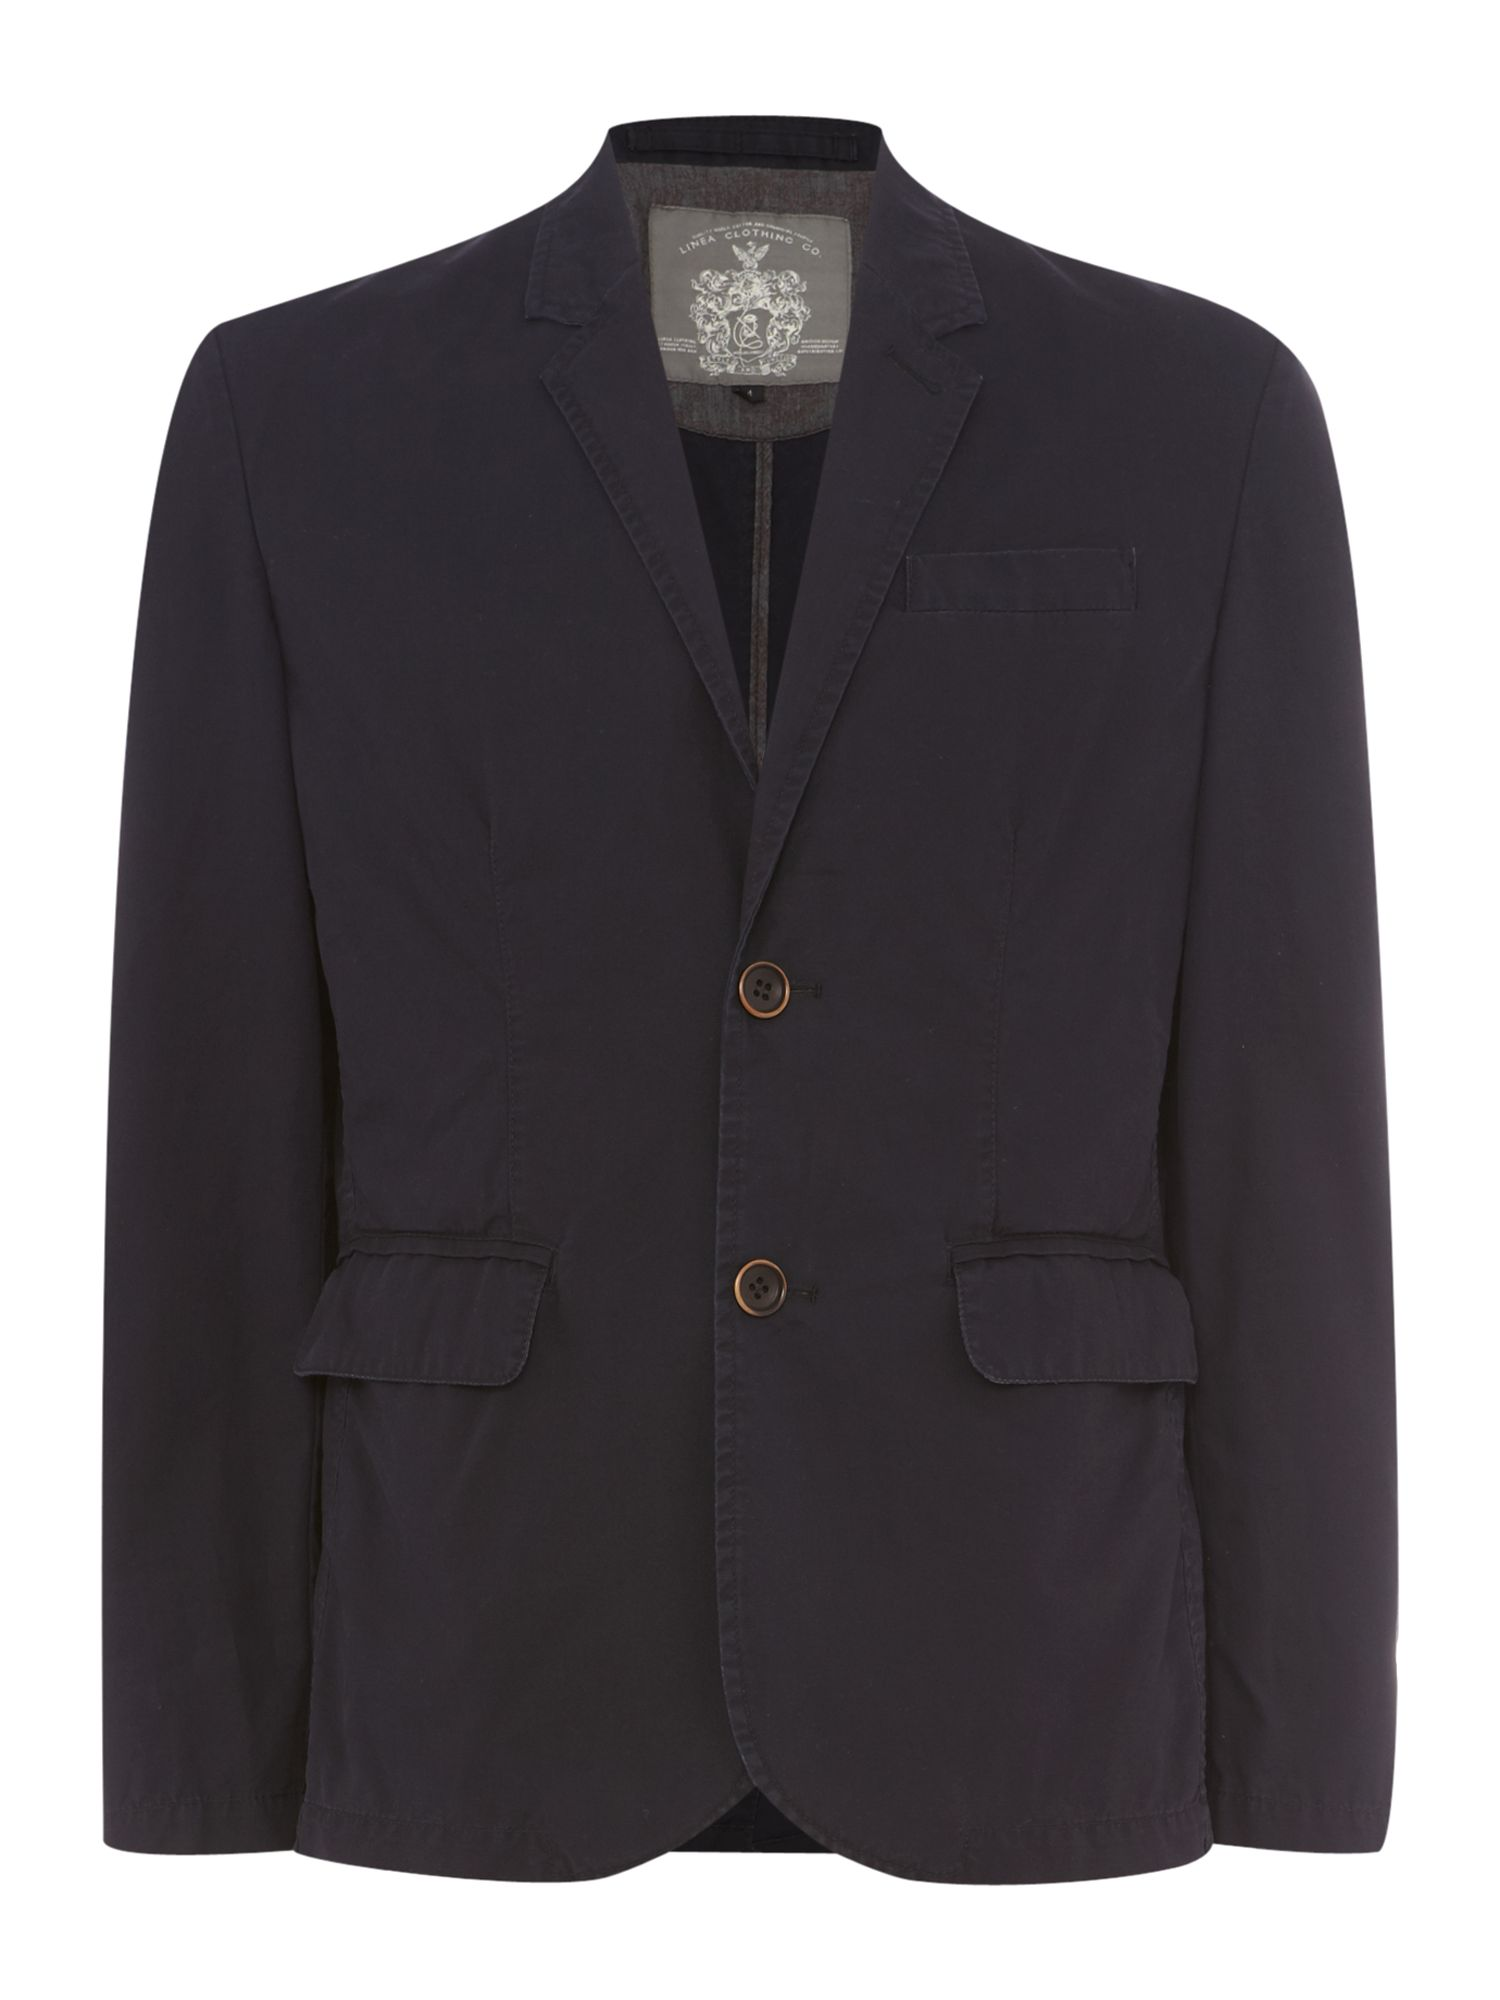 chaillot single breasted cotton unlined jacket